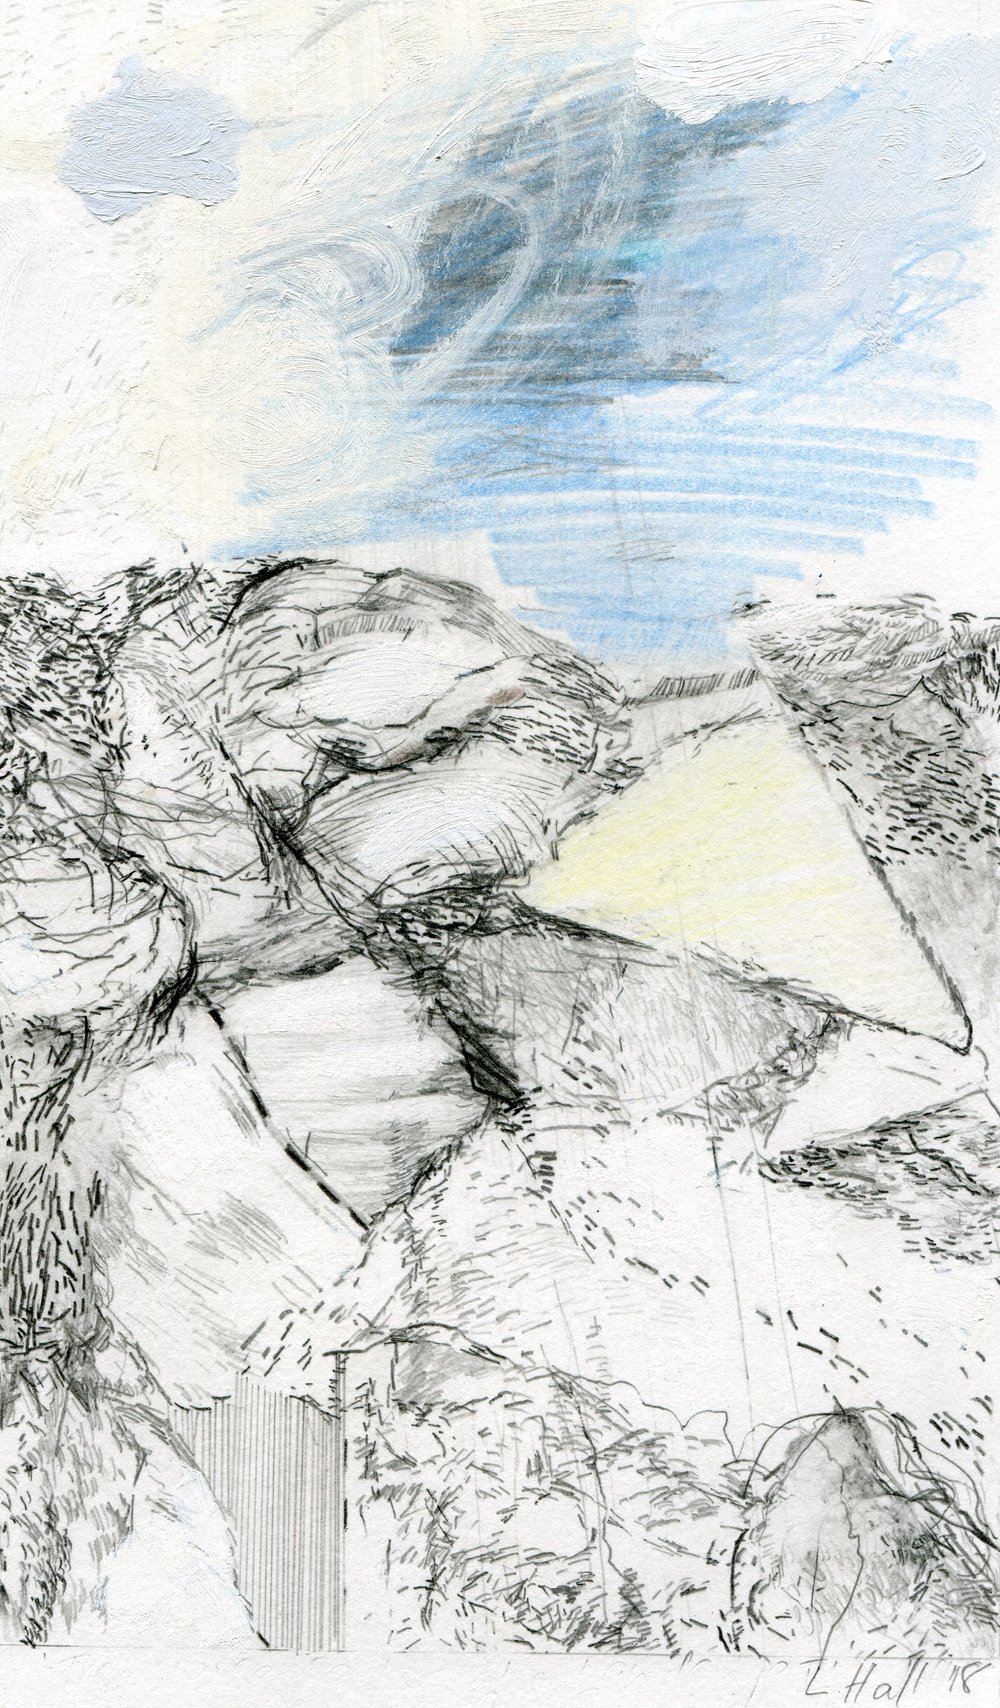 79b  Louise Hall  Transverse section of a Landscape II  mixed media on paper